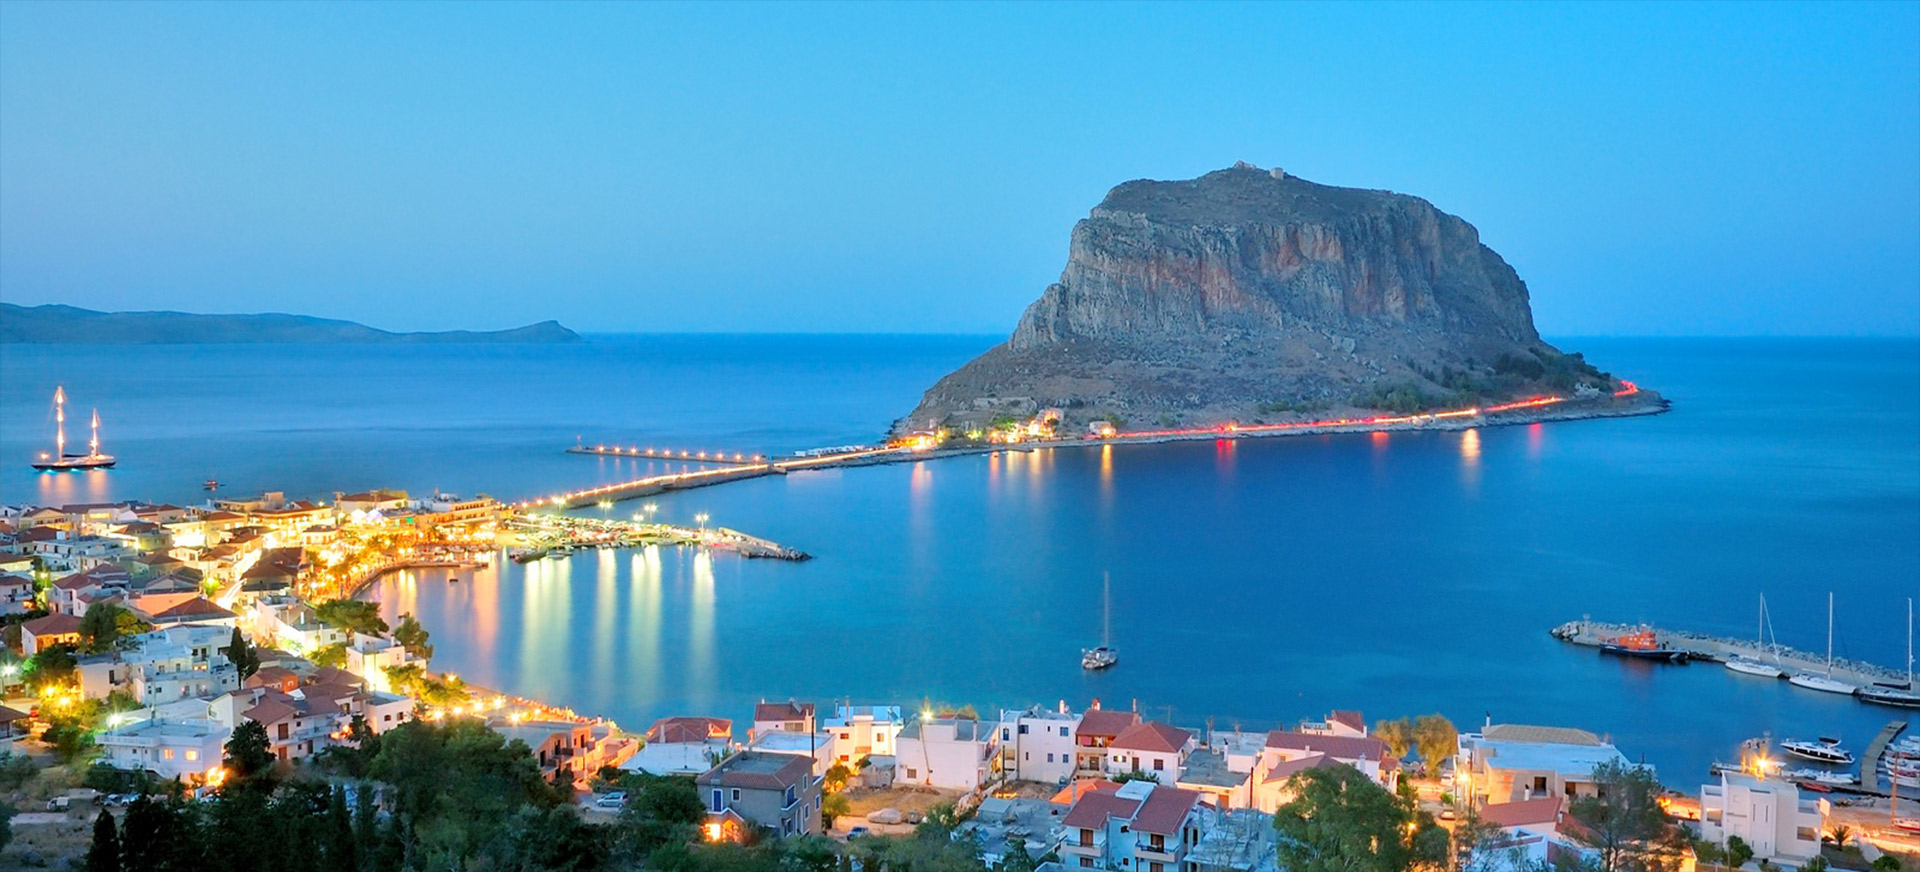 We at Monterrasol Travel welcome you to see Monemvasia during multiday private car tour. Contact us if you would like to customize your tour to Monemvasia.